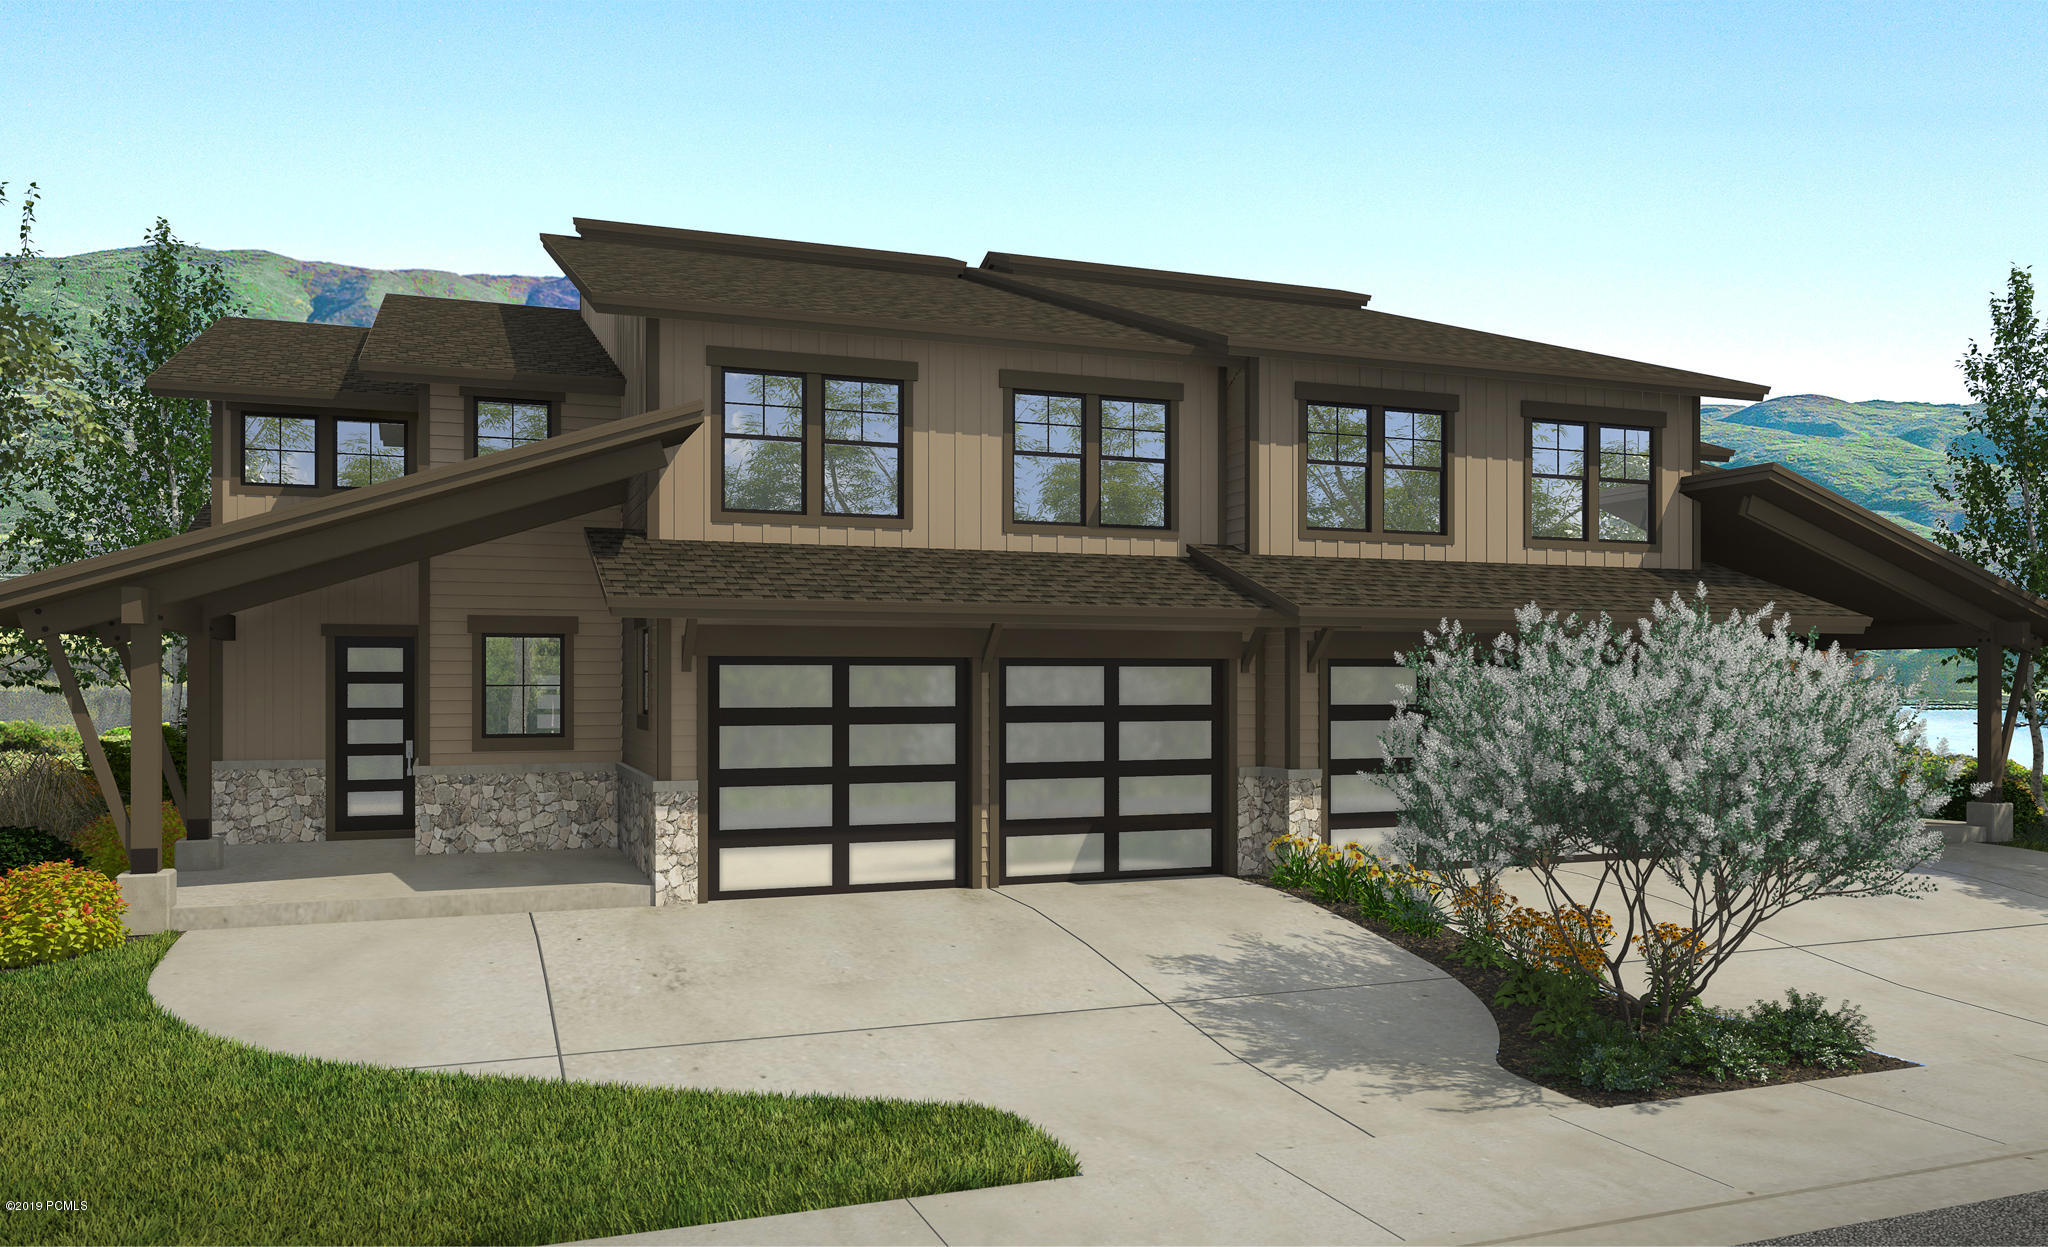 9946 Meer Circle, Heber City, Utah 84032, 4 Bedrooms Bedrooms, ,4 BathroomsBathrooms,Condominium,For Sale,Meer,20190109112430415765000000